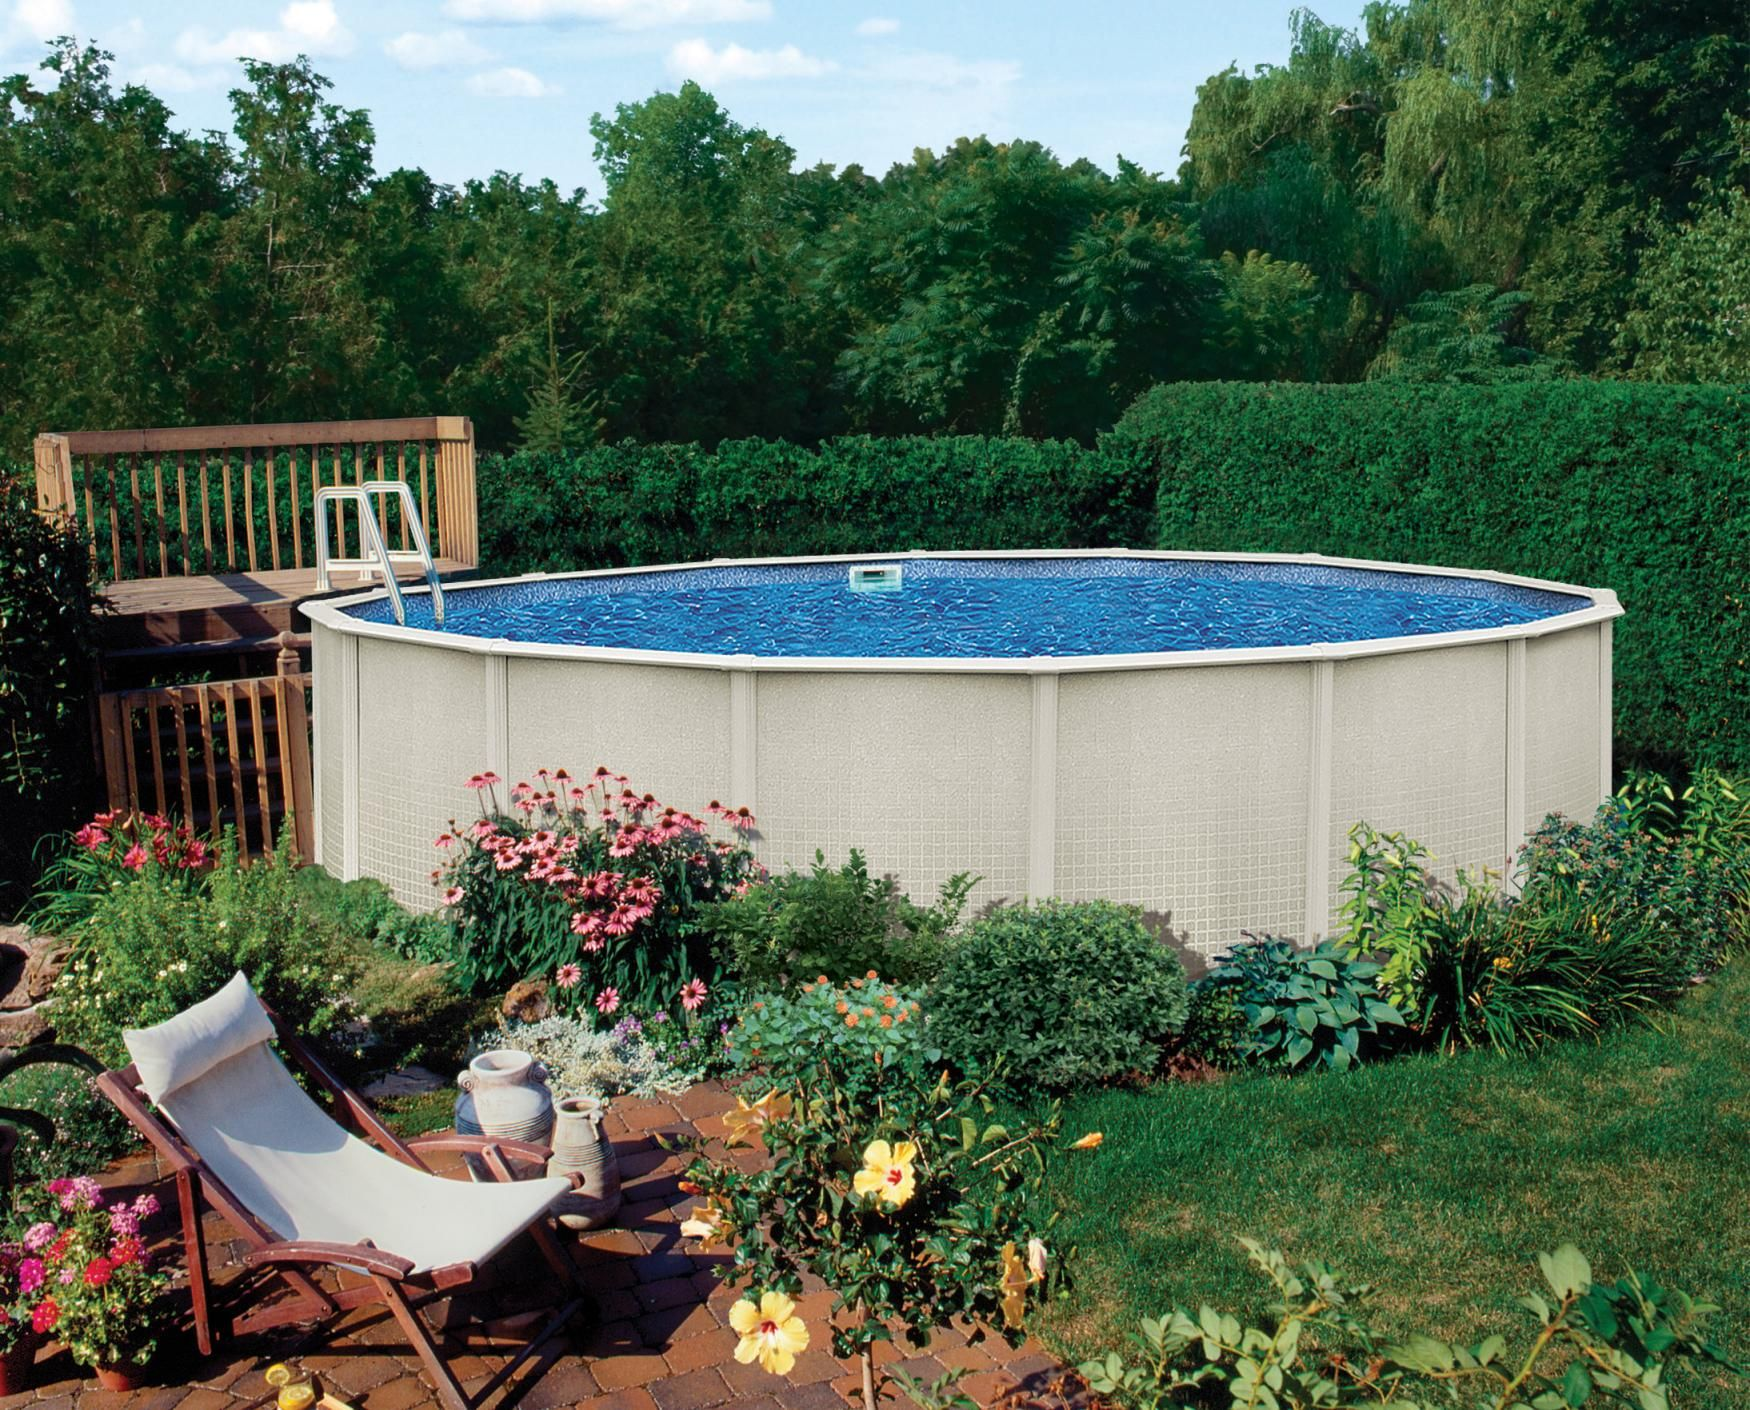 Above ground pool backyard ideas belize 15 39 x30 39 oval for Above ground pool decks las vegas